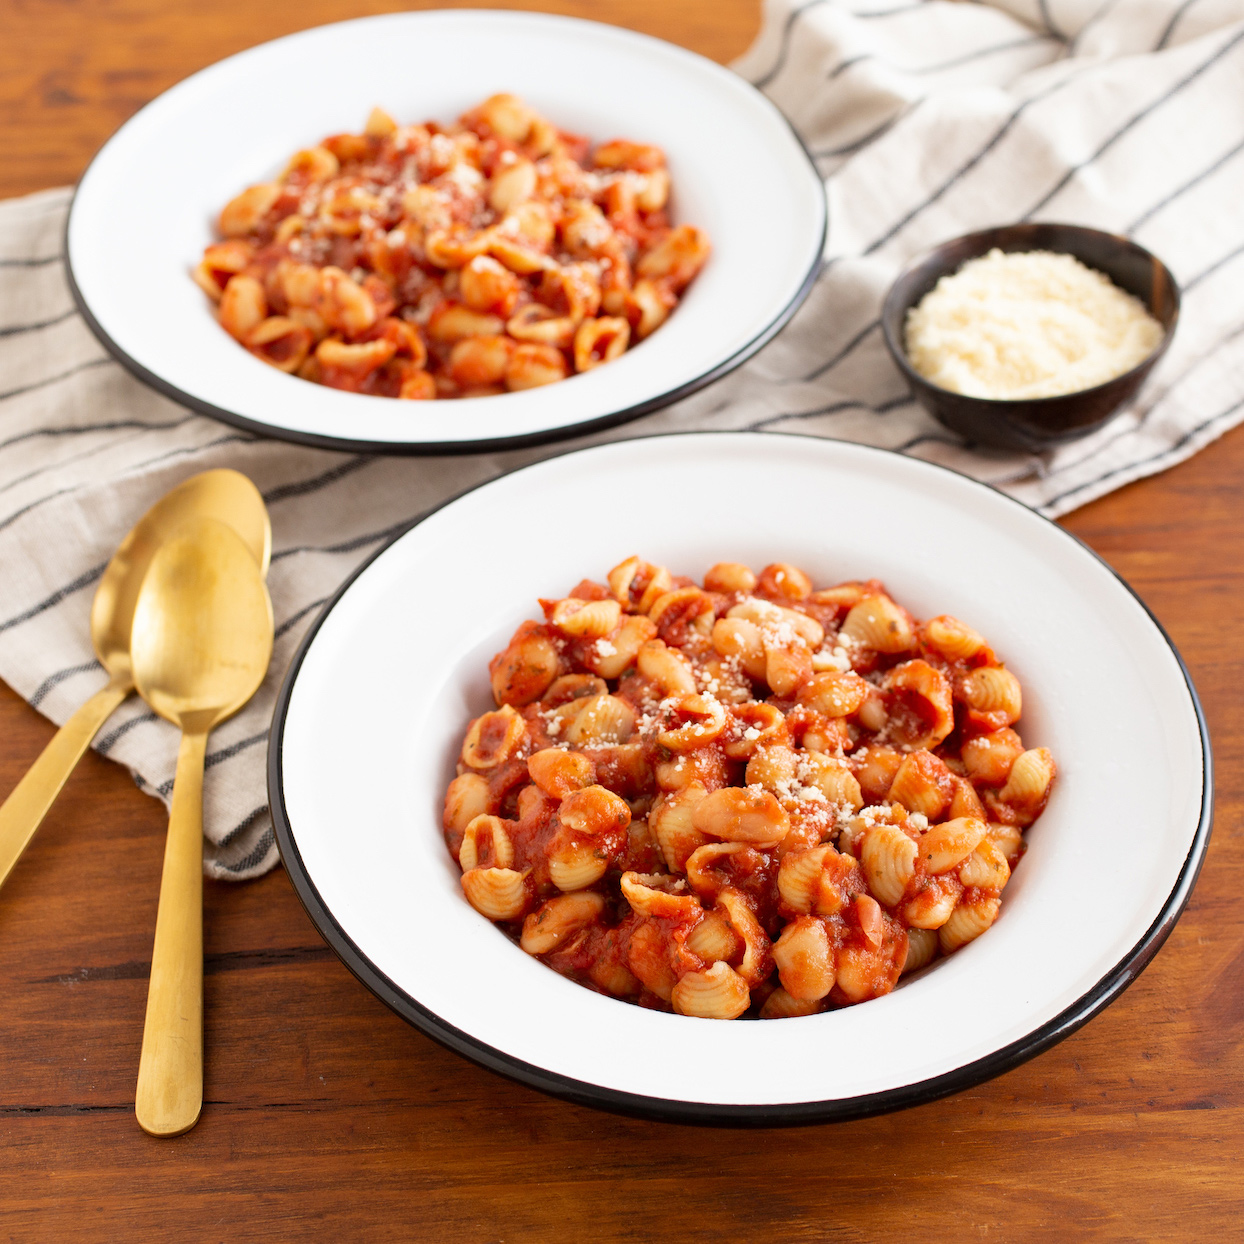 Bowls of Pasta Fagioli recipe